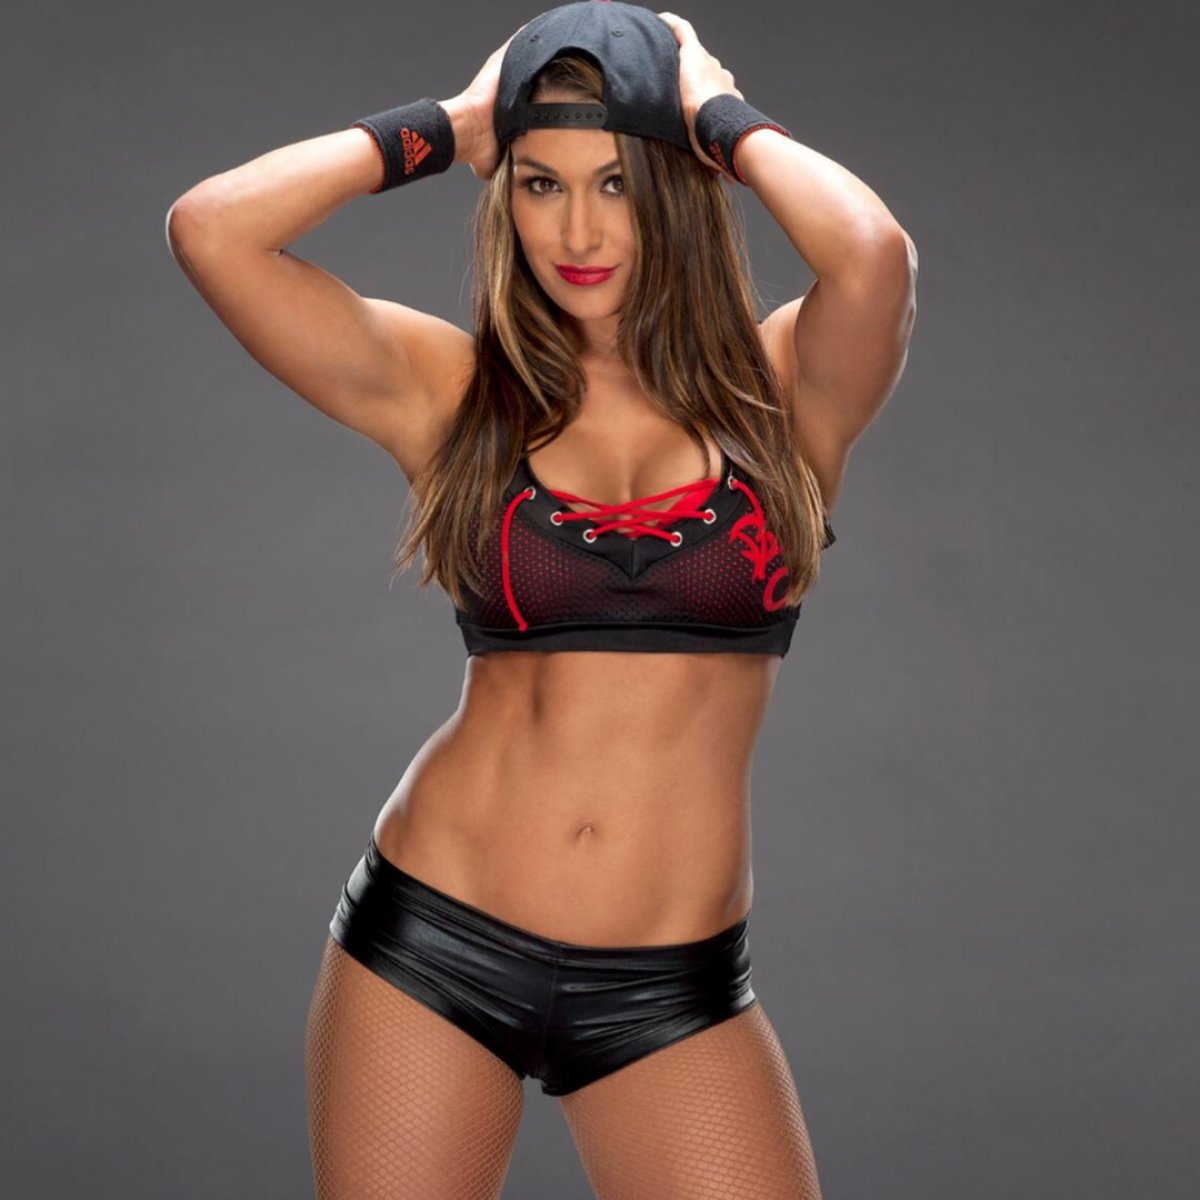 37 hot pictures of nikki bella wwe diva - Diva nikki bella ...